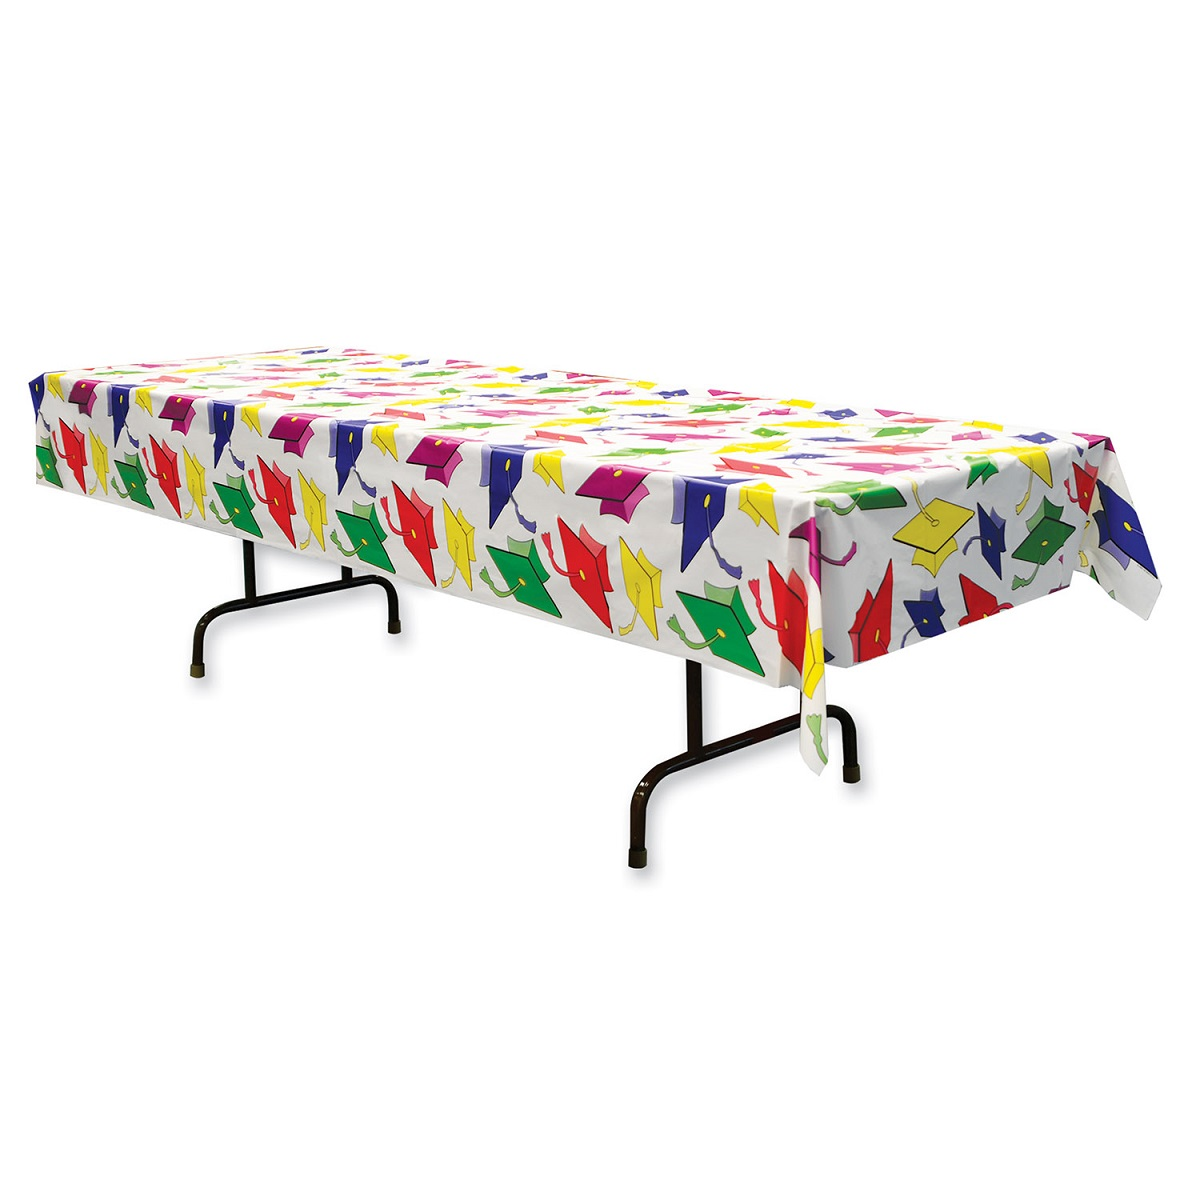 Club Pack of 12 Graduation Disposable Rectangle Plastic Banquet Party Table Covers 108